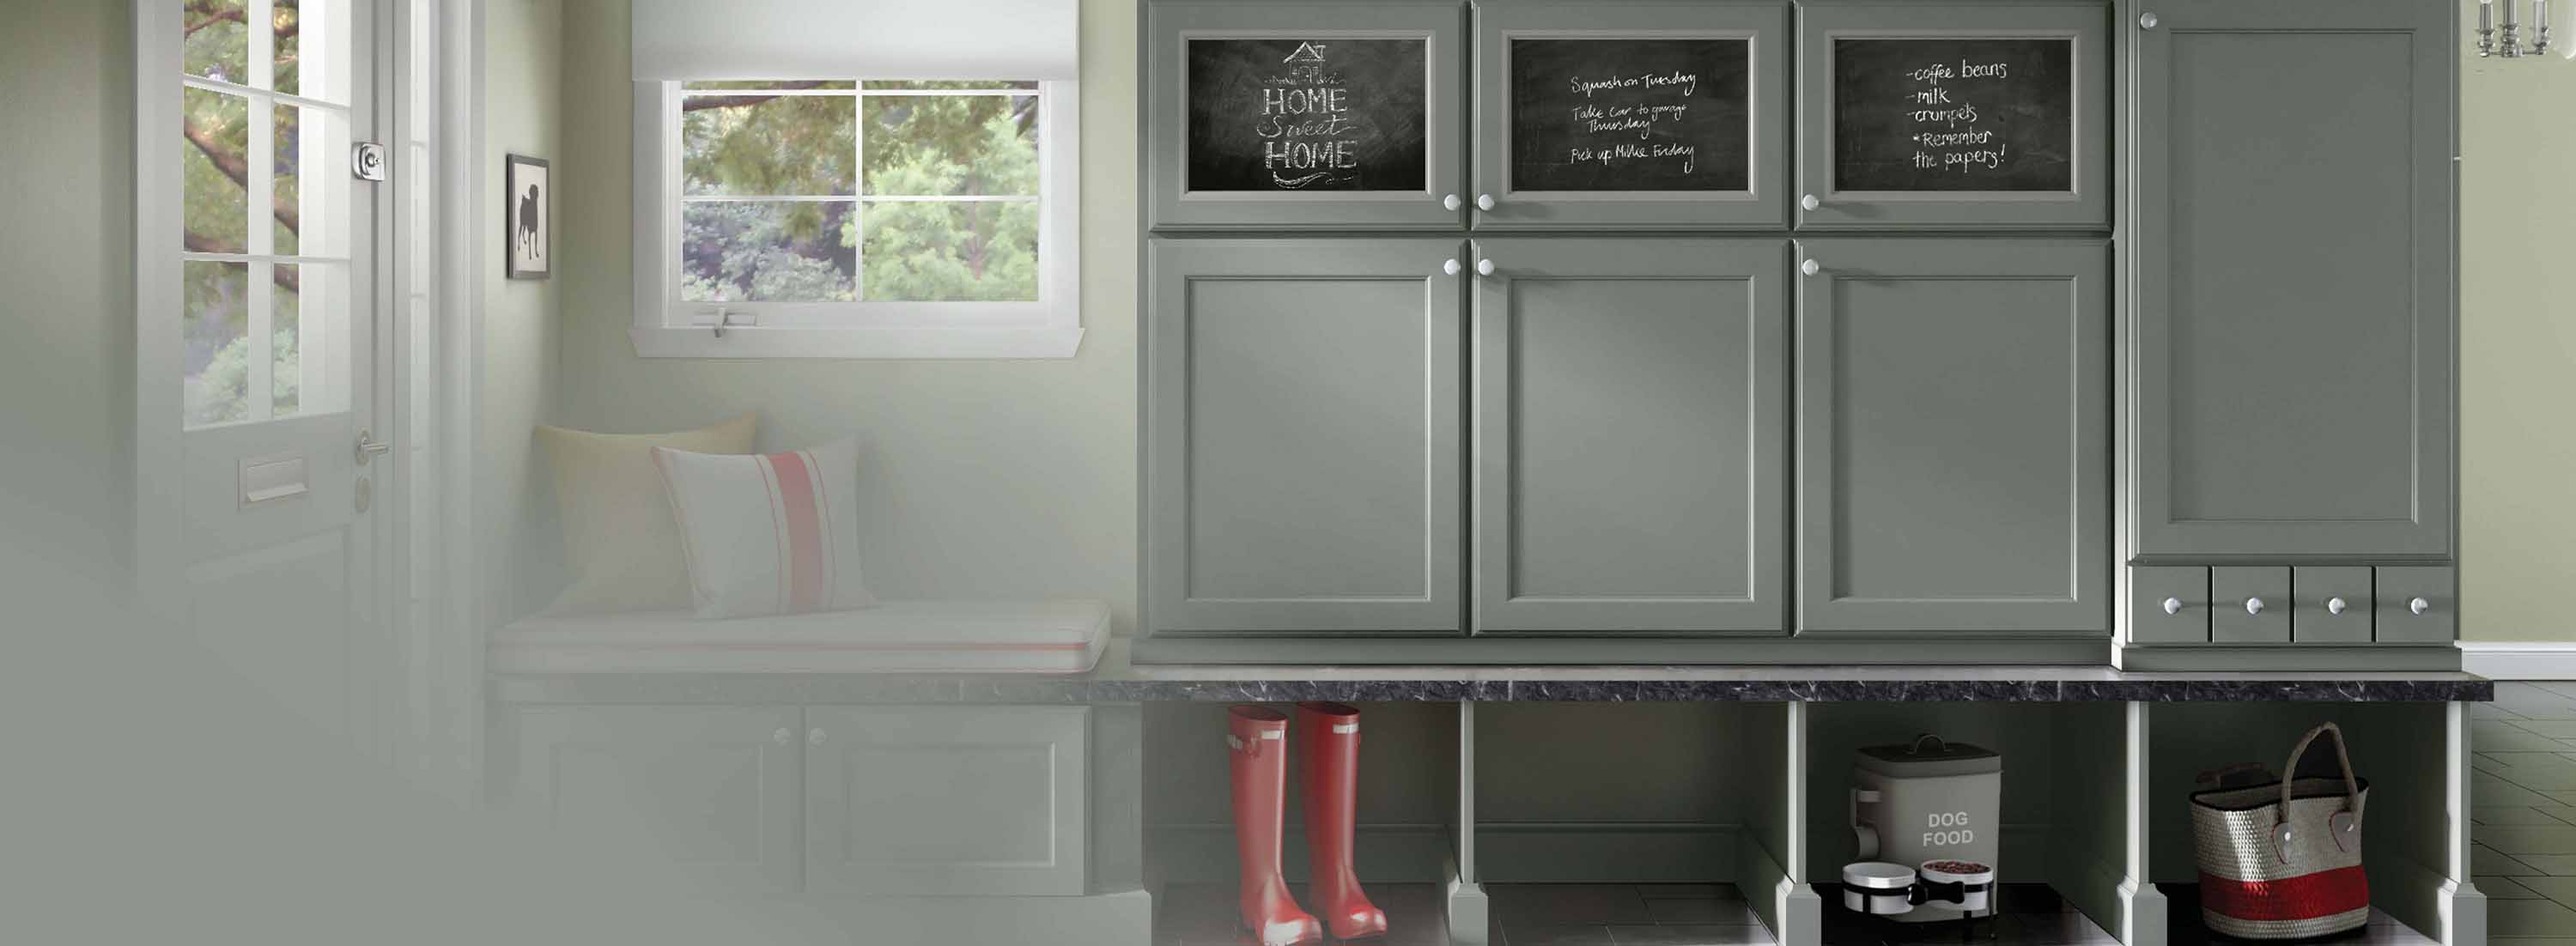 Seacrest eventide cabinets mf cabinets for Cheap kitchen cabinets houston tx